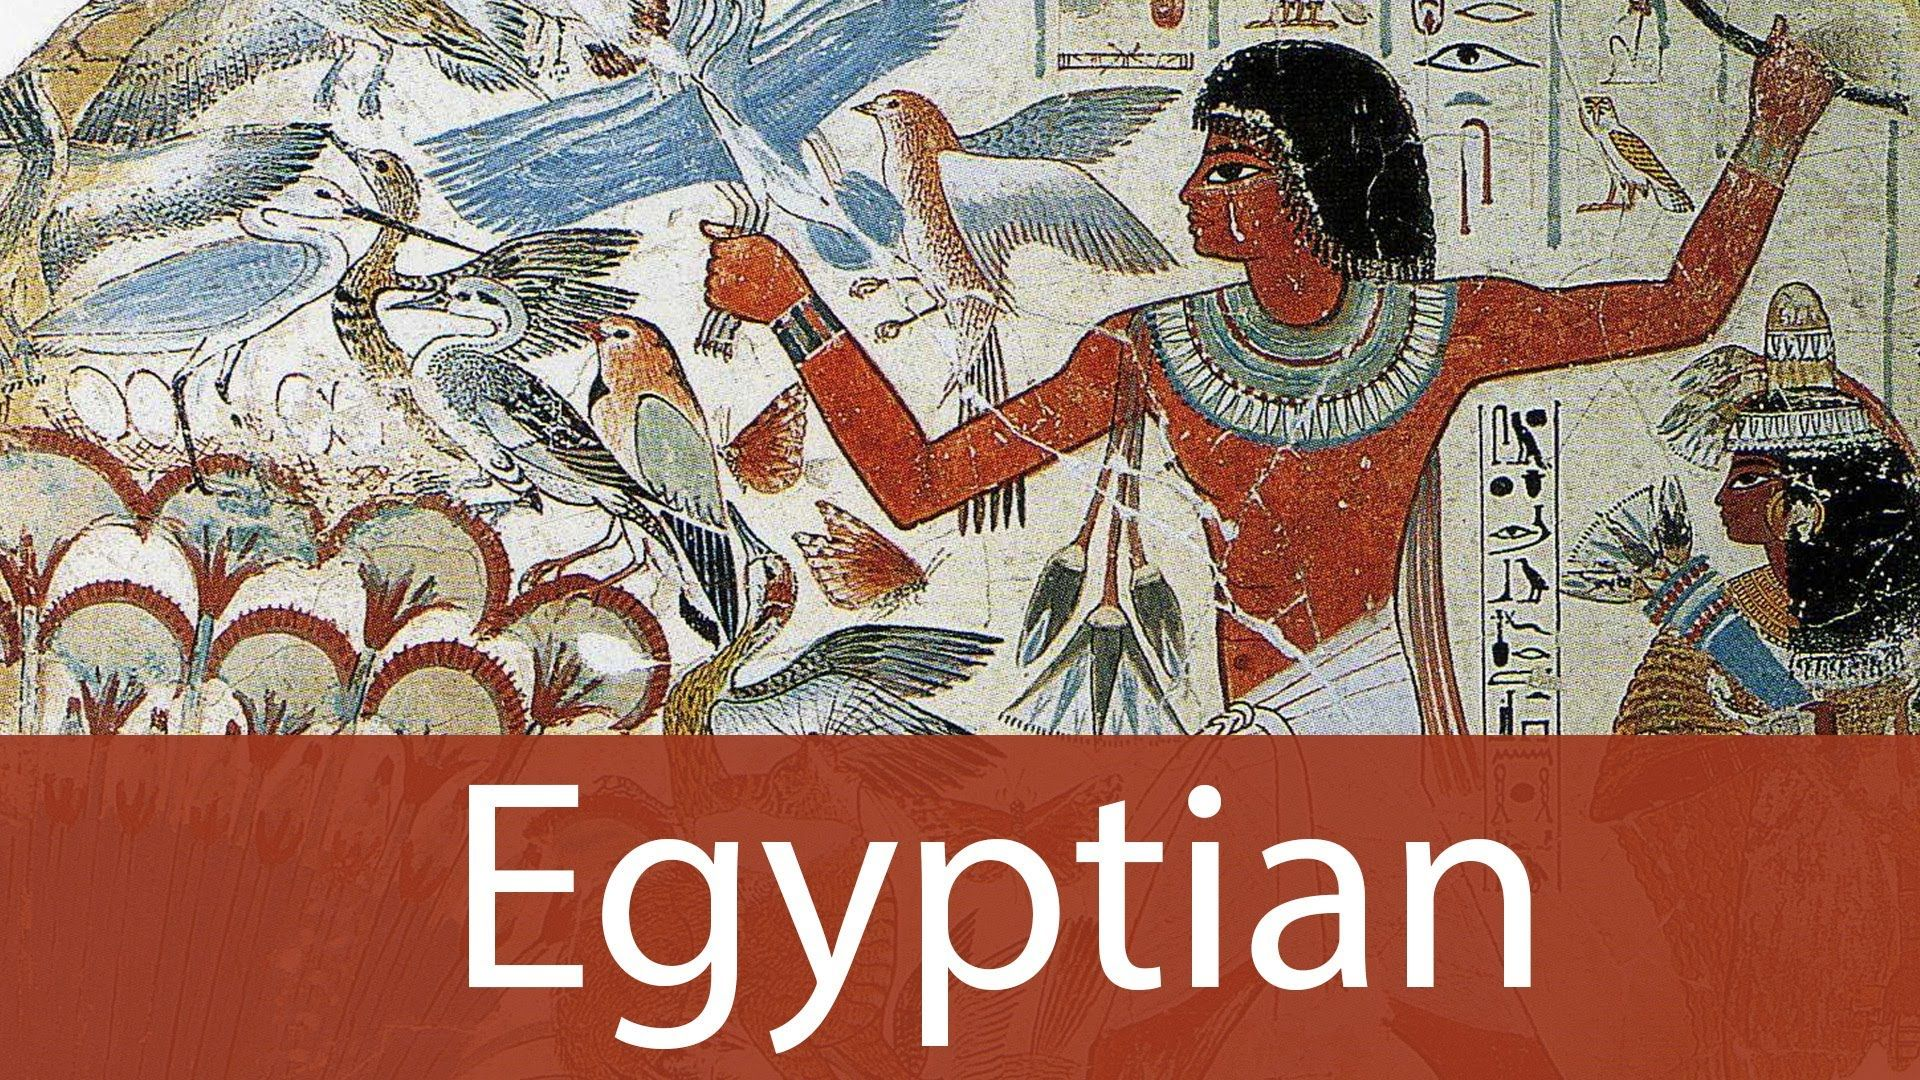 Egyptian Art History From Goodbye Art Academy